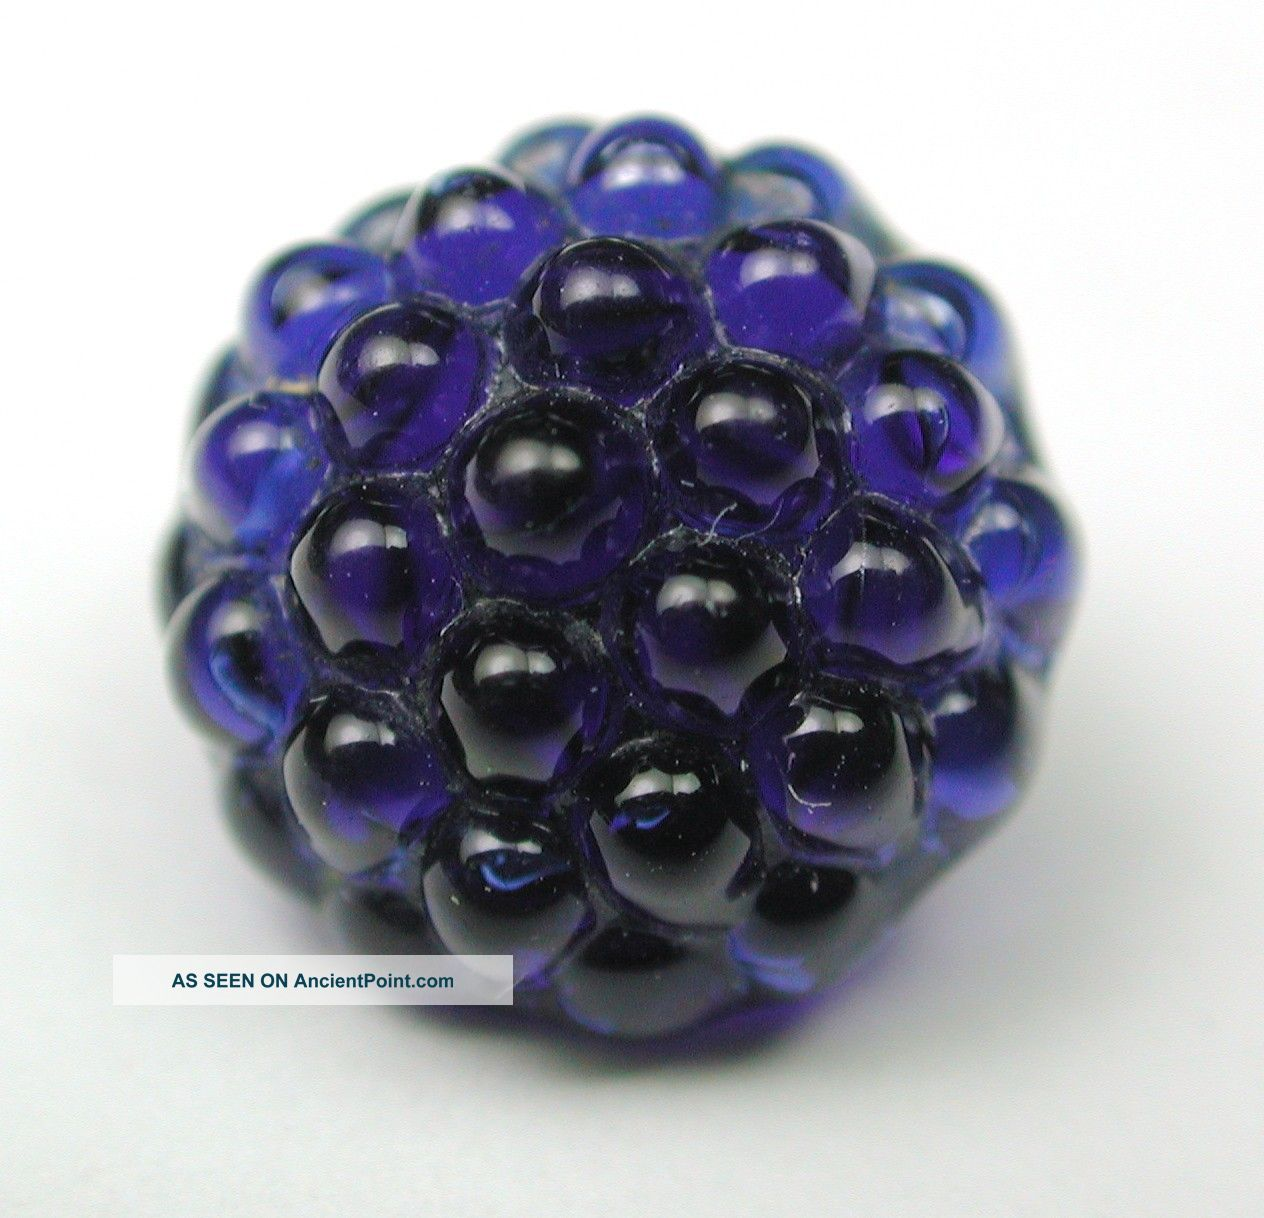 Antique Charmstring Glass Button Cobalt Blue Berry Top Swirl Back Buttons photo